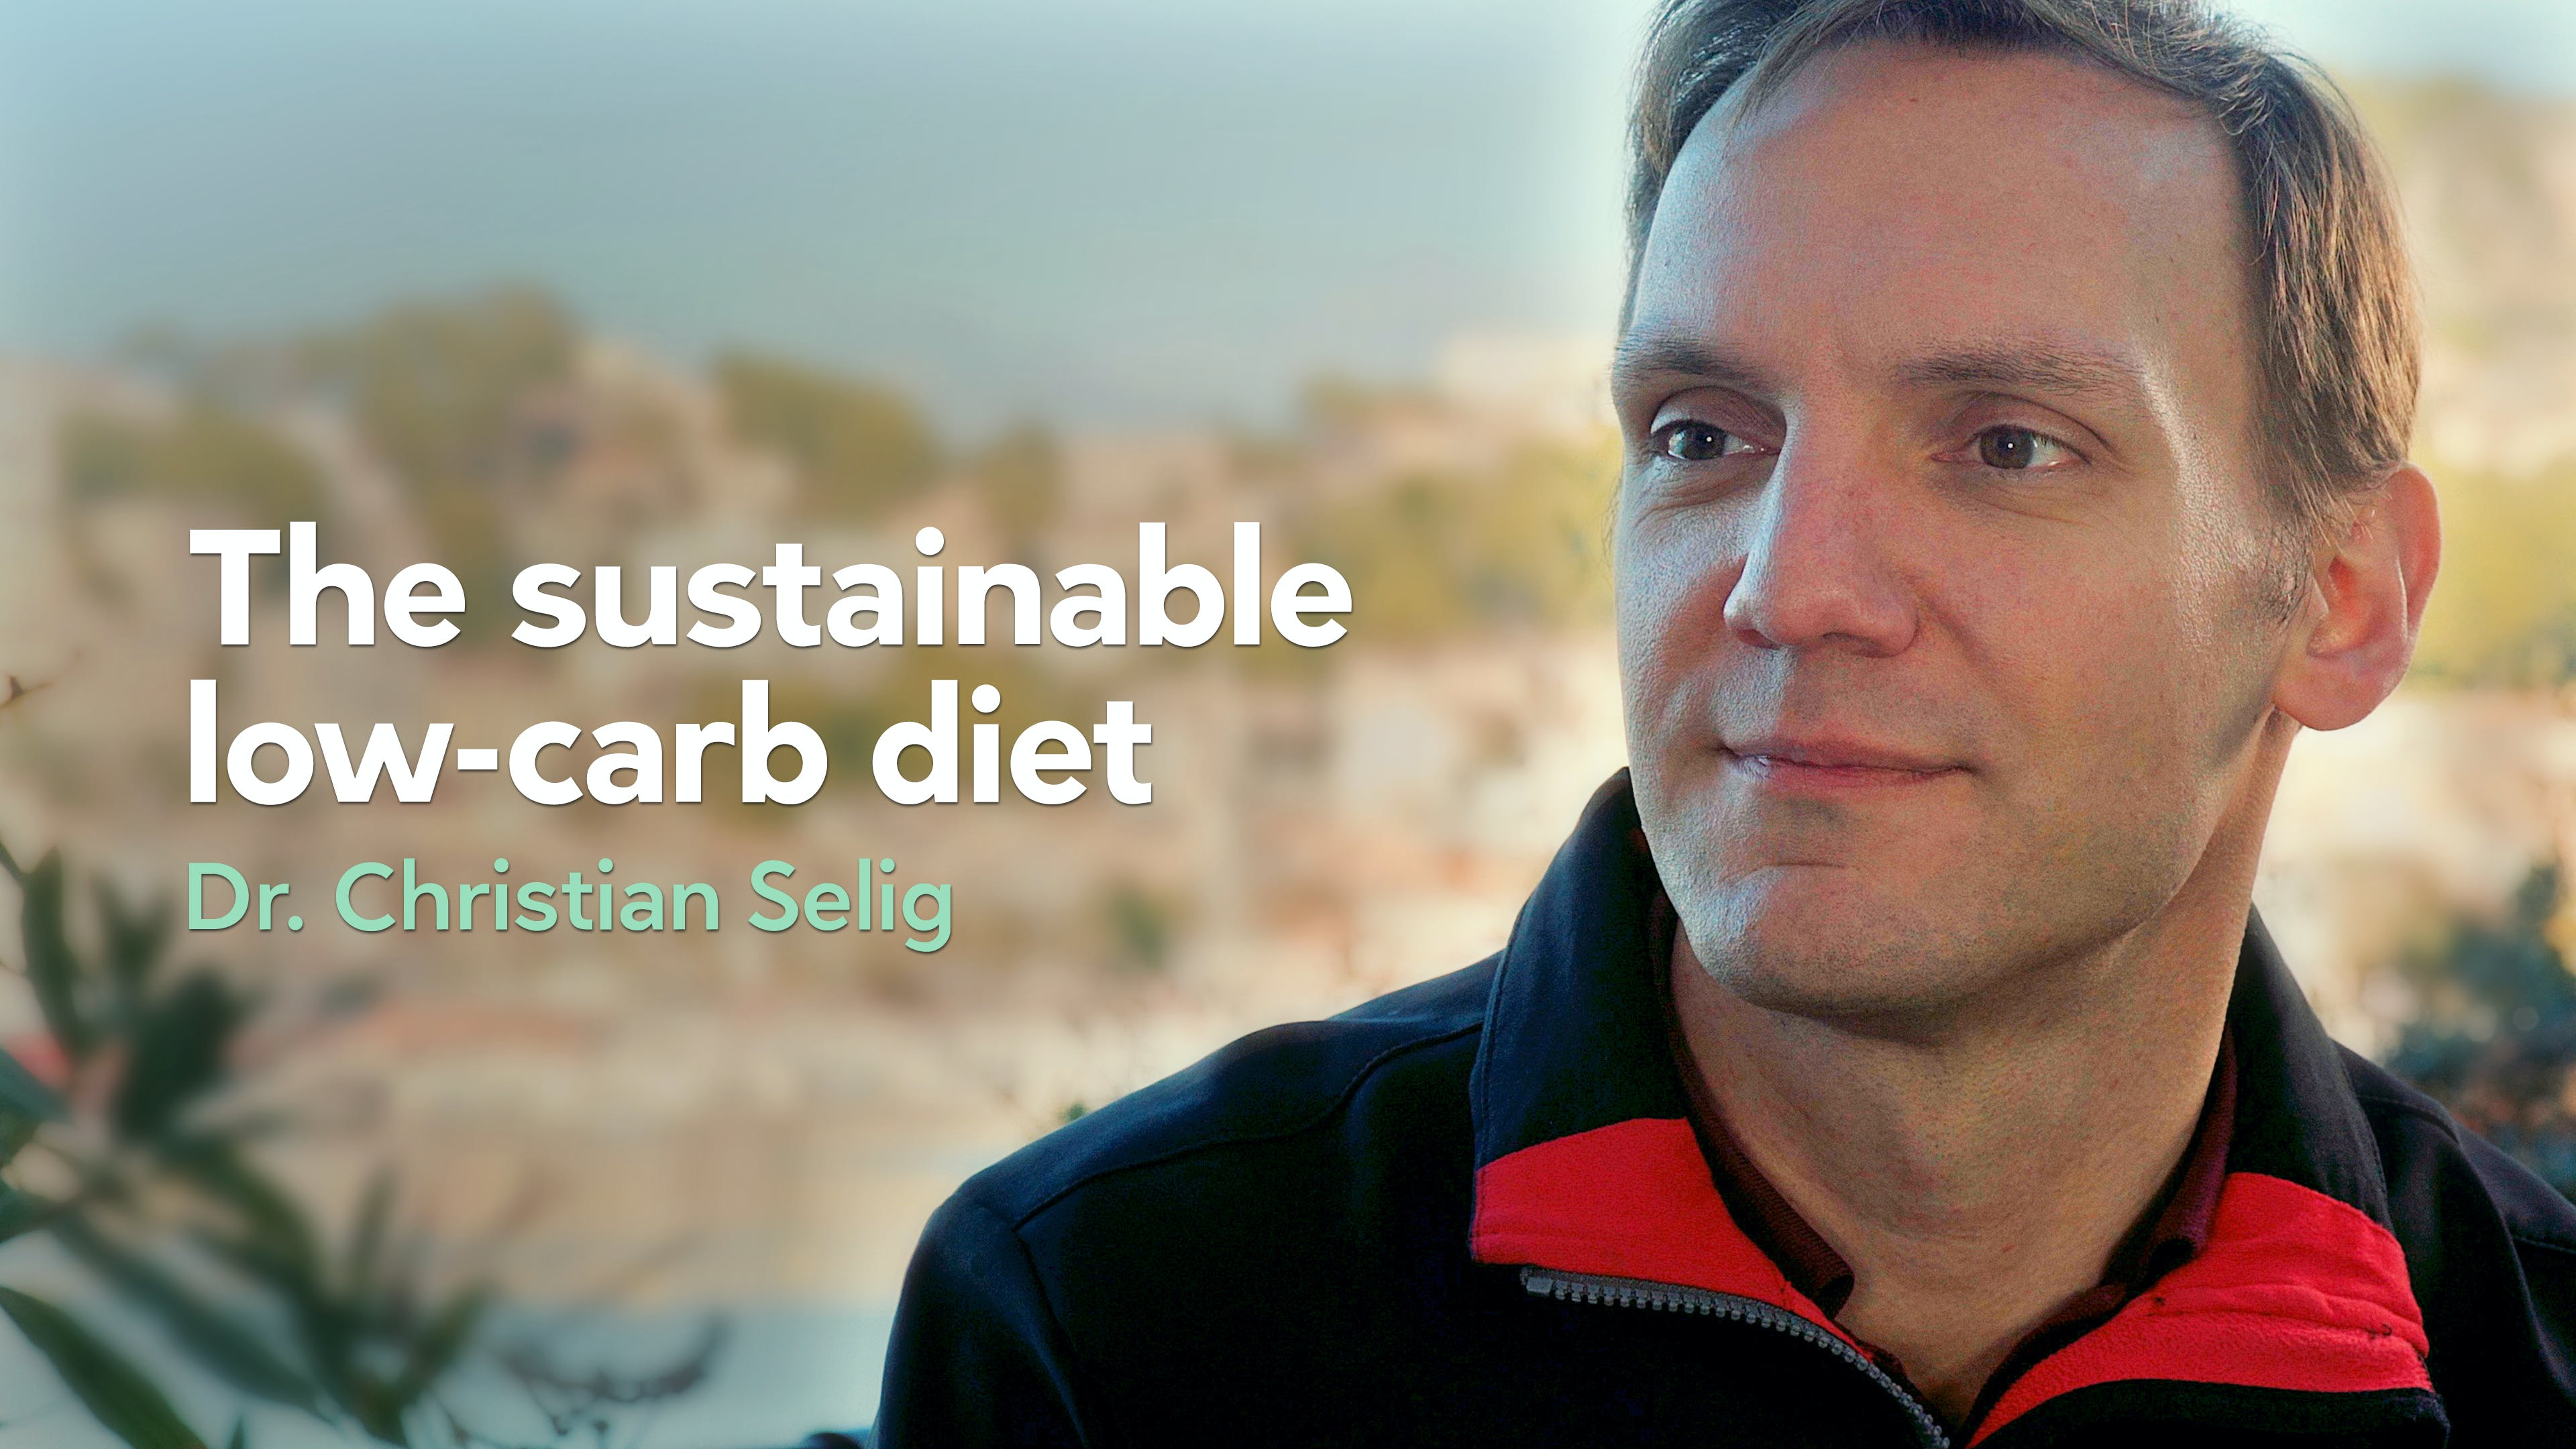 The sustainable low-carb diet